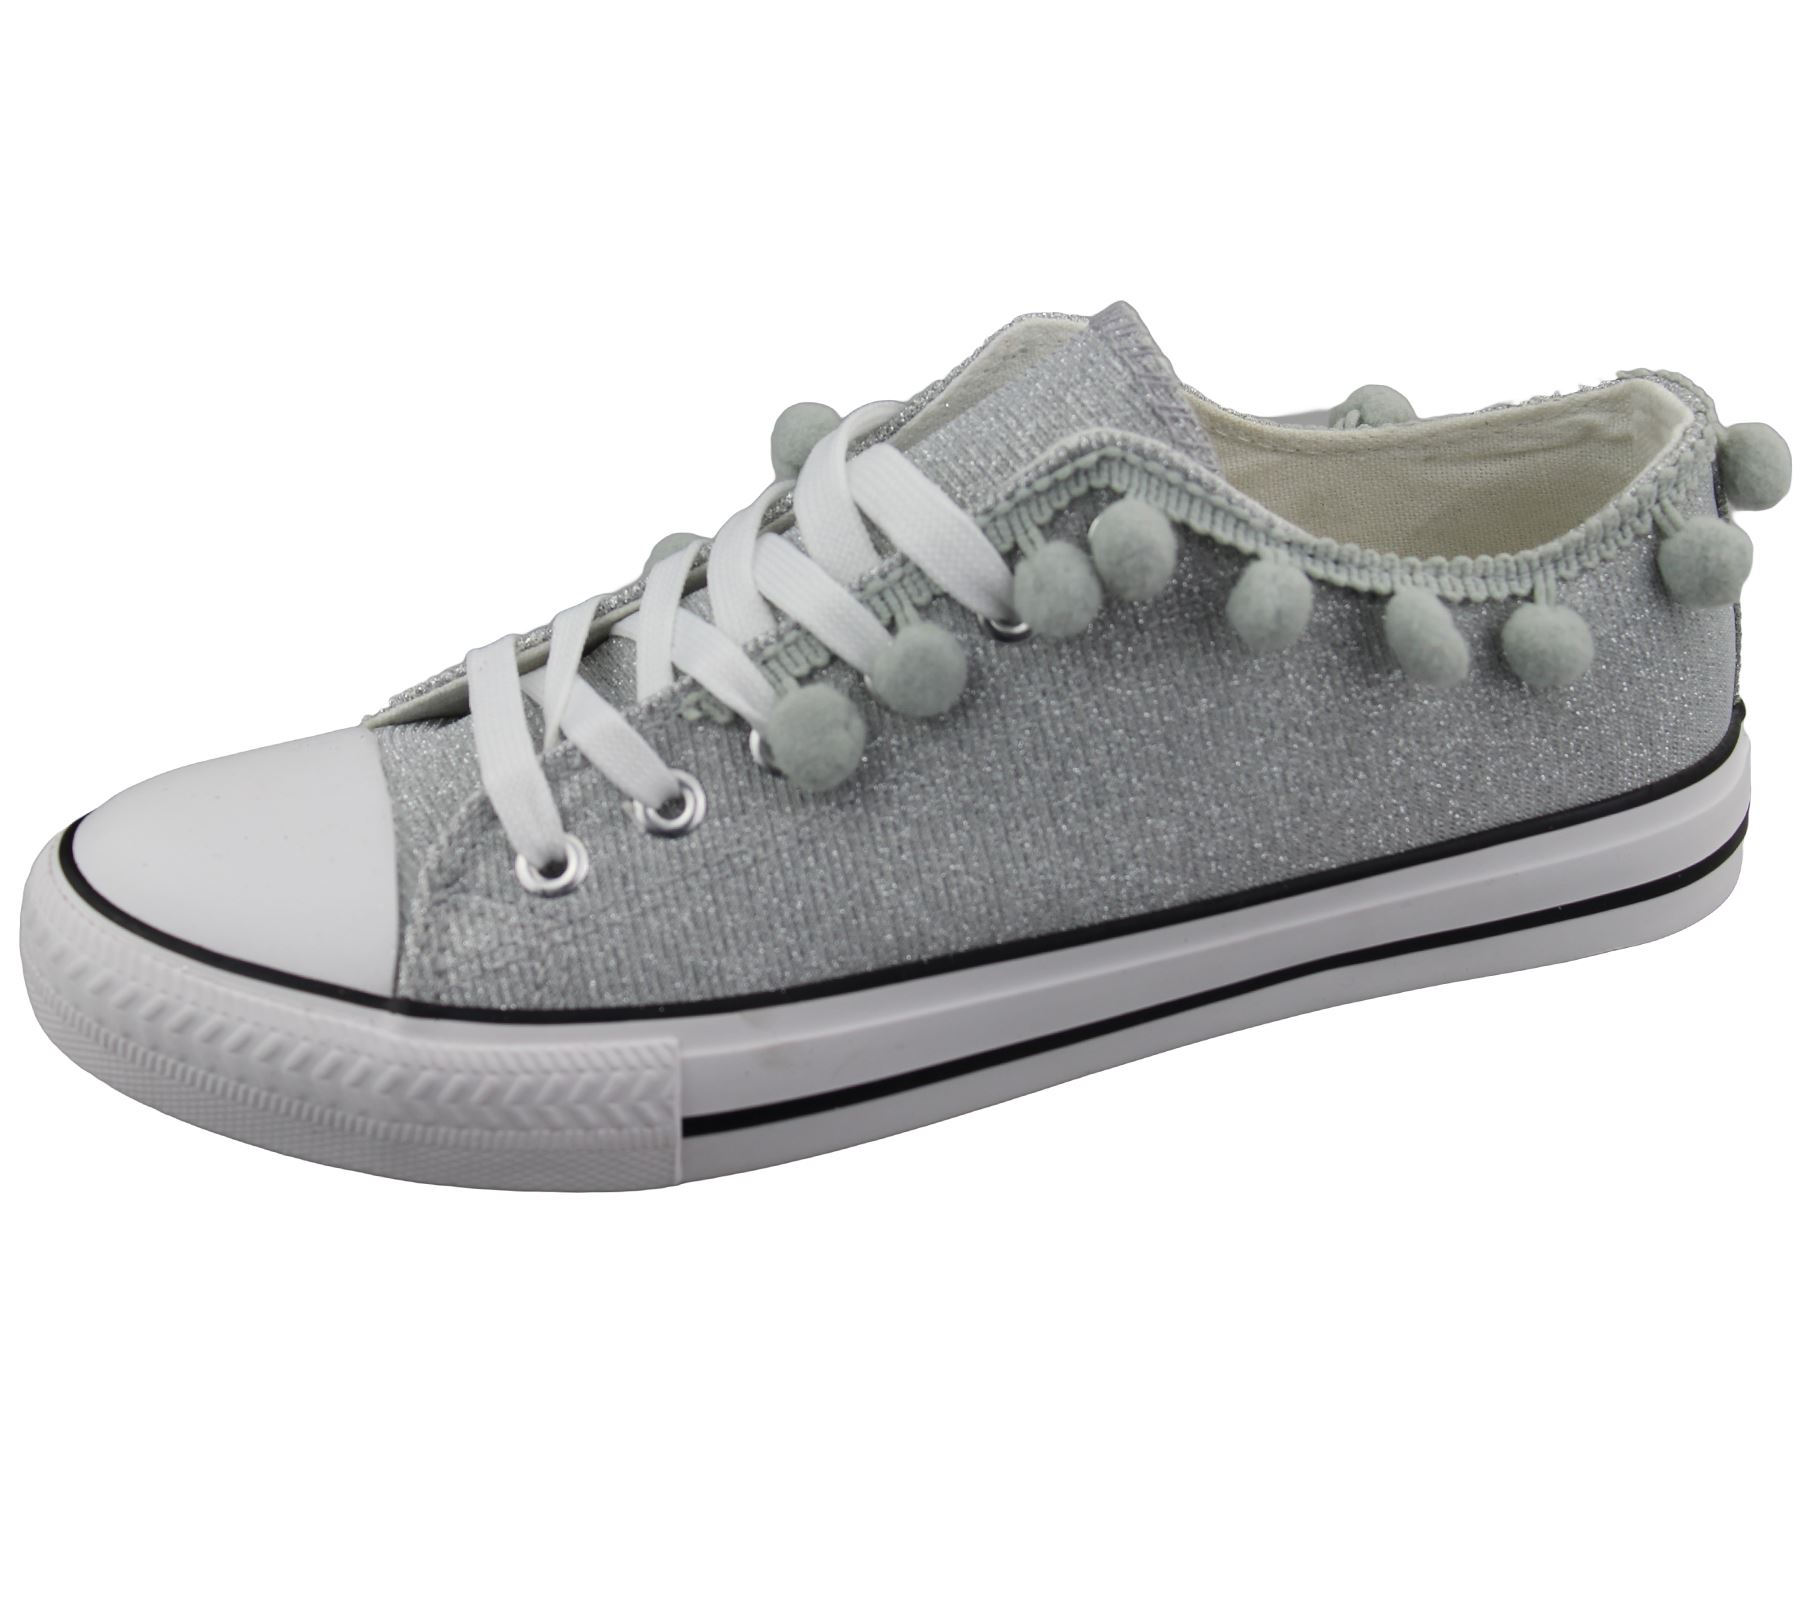 Womens-Sneakers-Flat-Pumps-Ladies-Glittered-Summer-Plimsole-Canvas-Shoes thumbnail 15